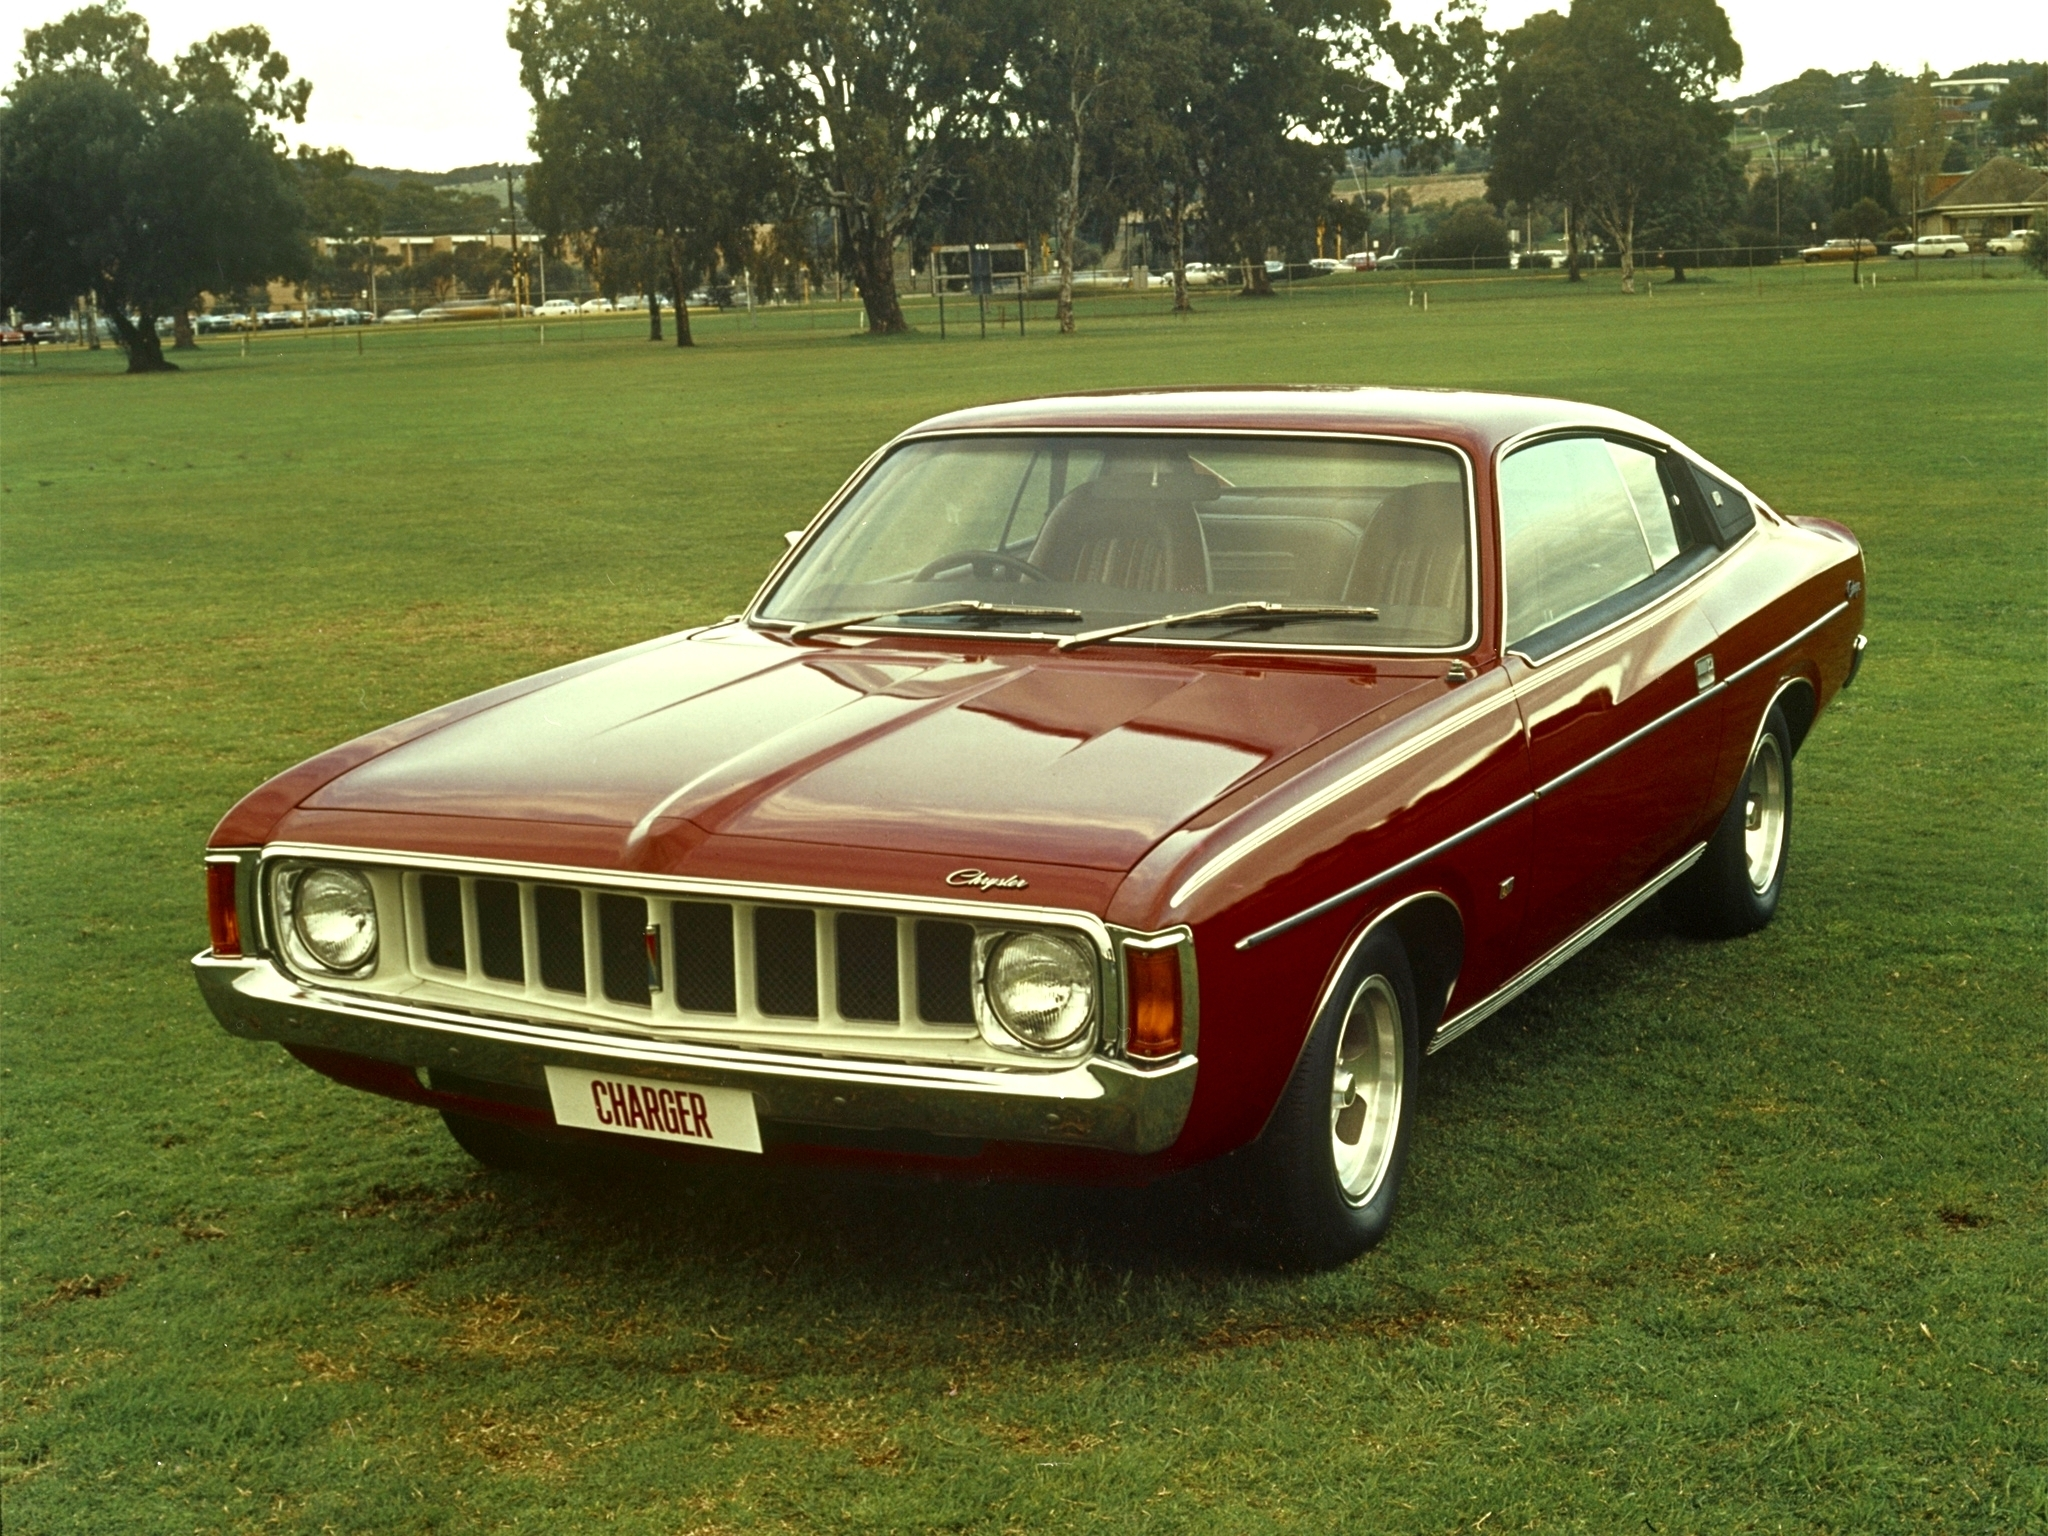 Chrysler Valiant #16